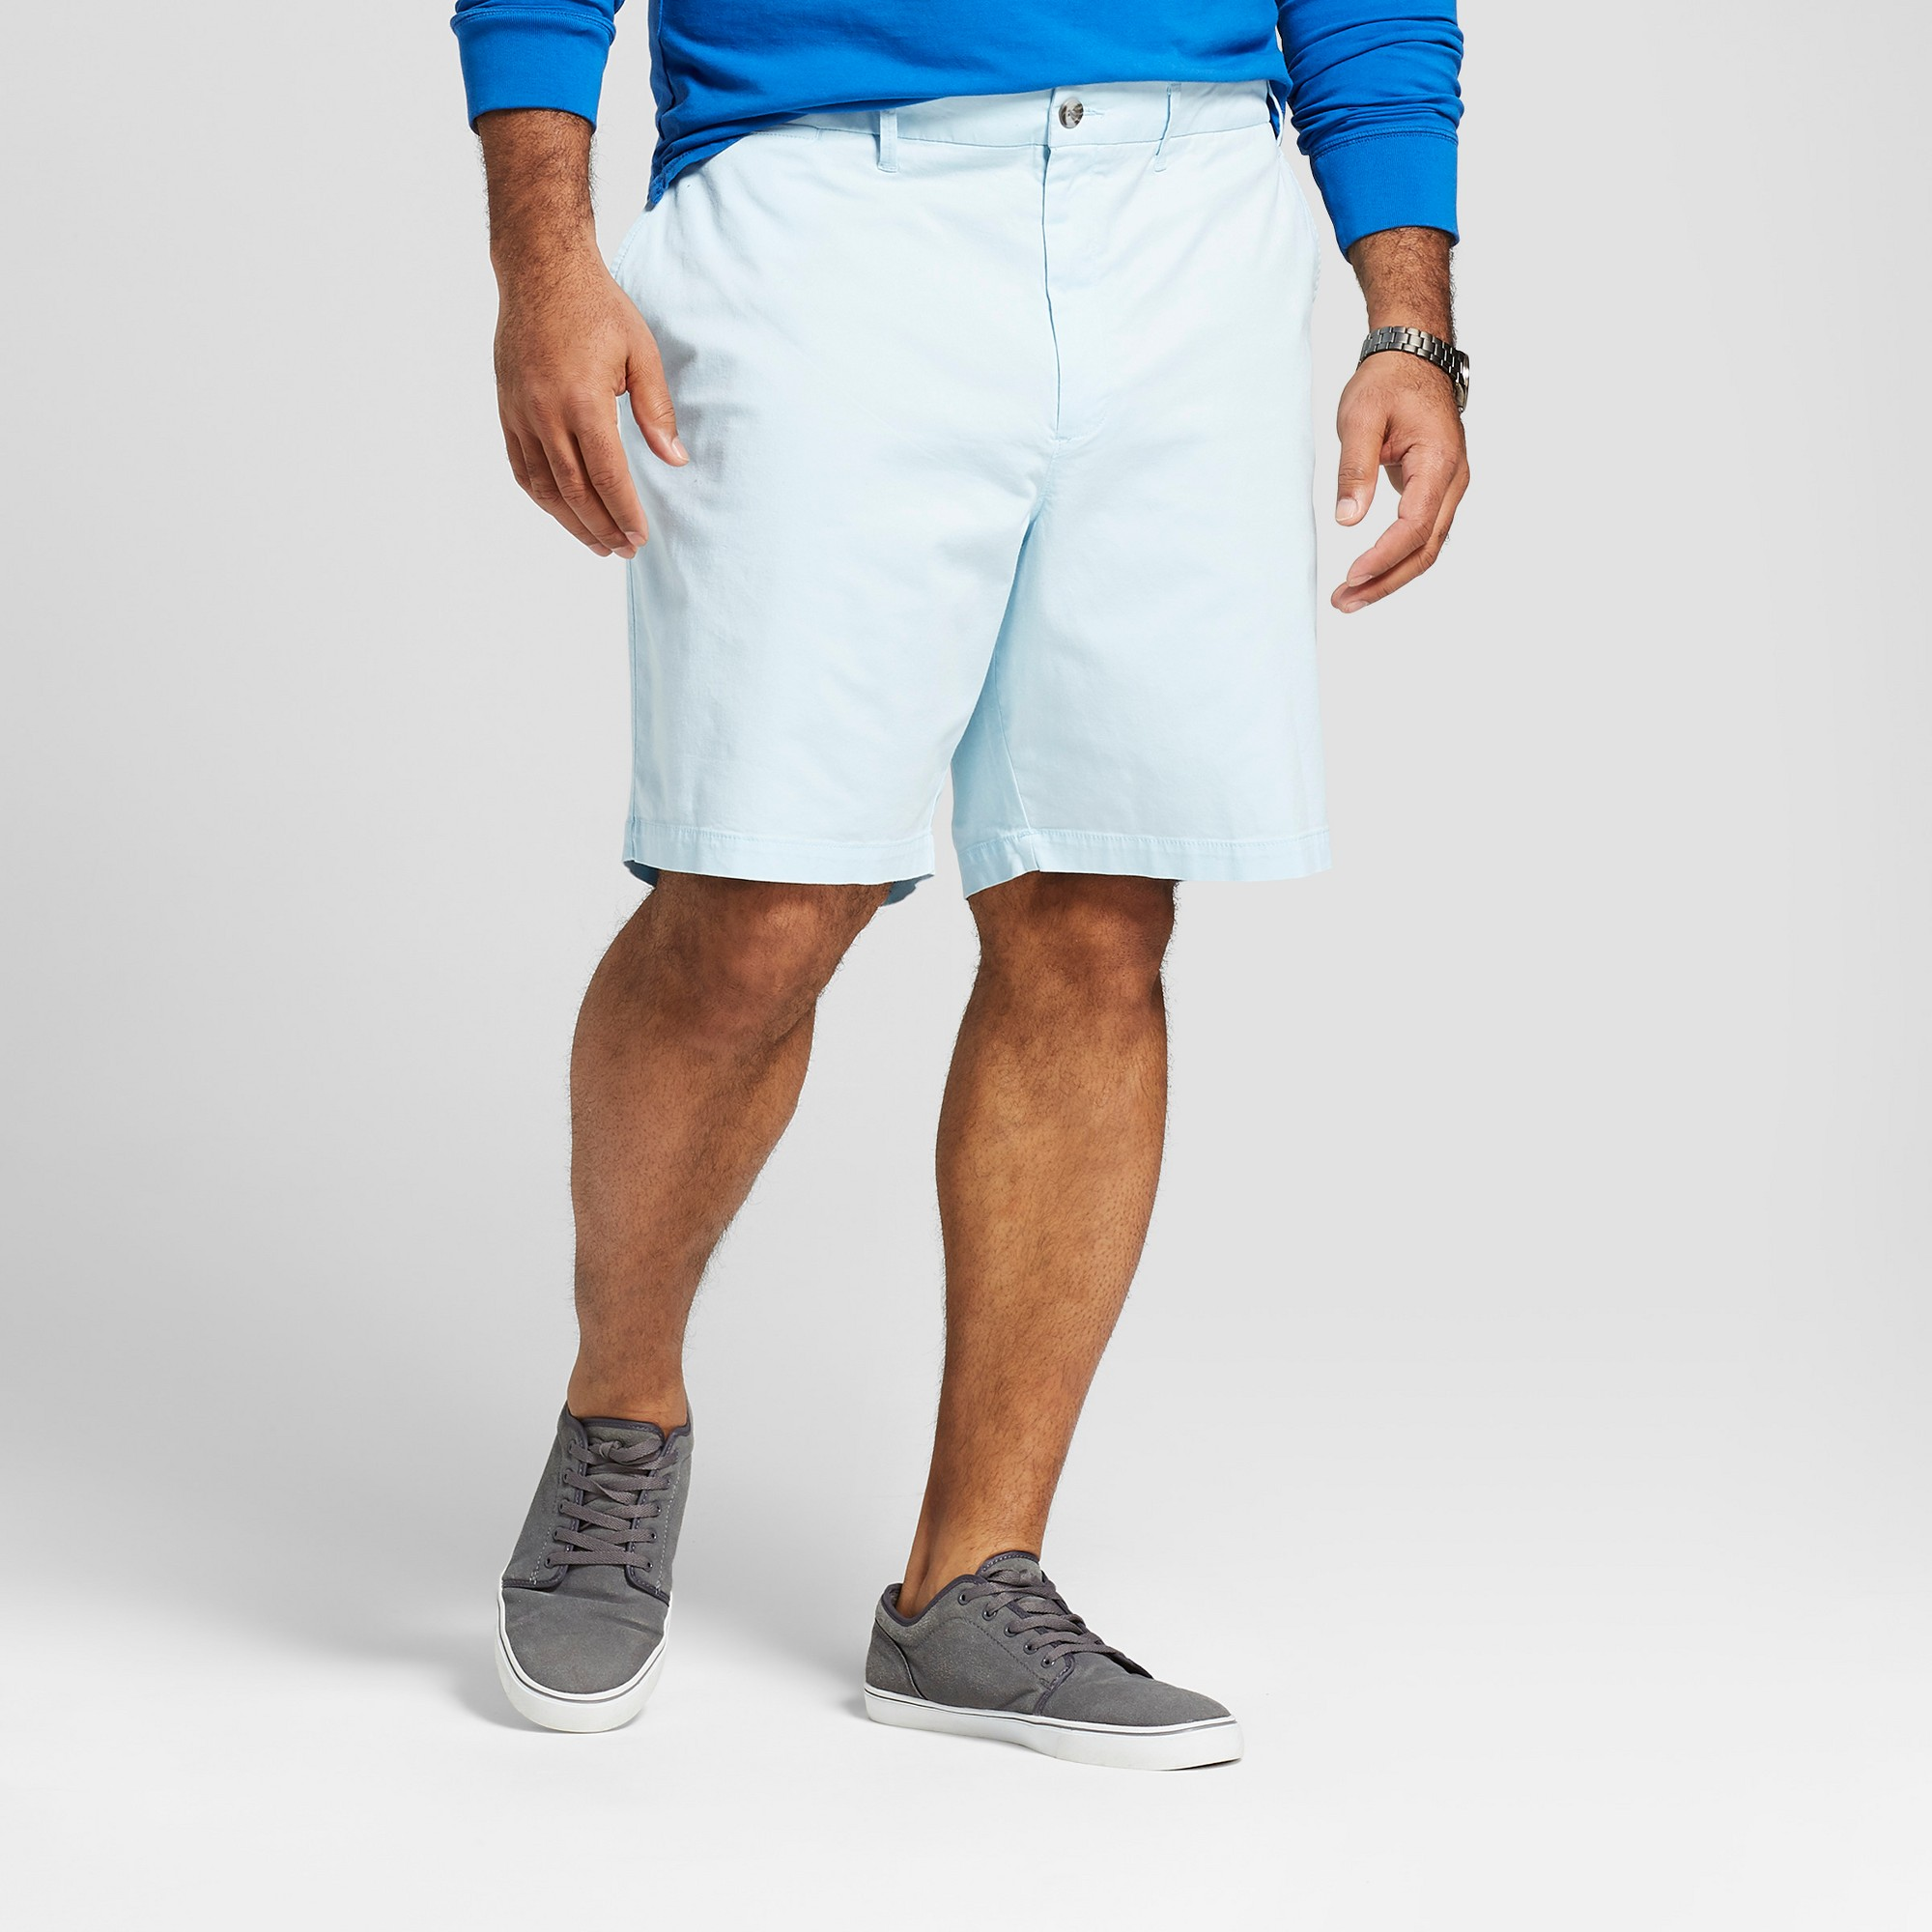 5adc36c0a0 Men's Big & Tall 10.5 Linden Flat Front Shorts - Goodfellow & Co Feather  Aqua 60, Blue